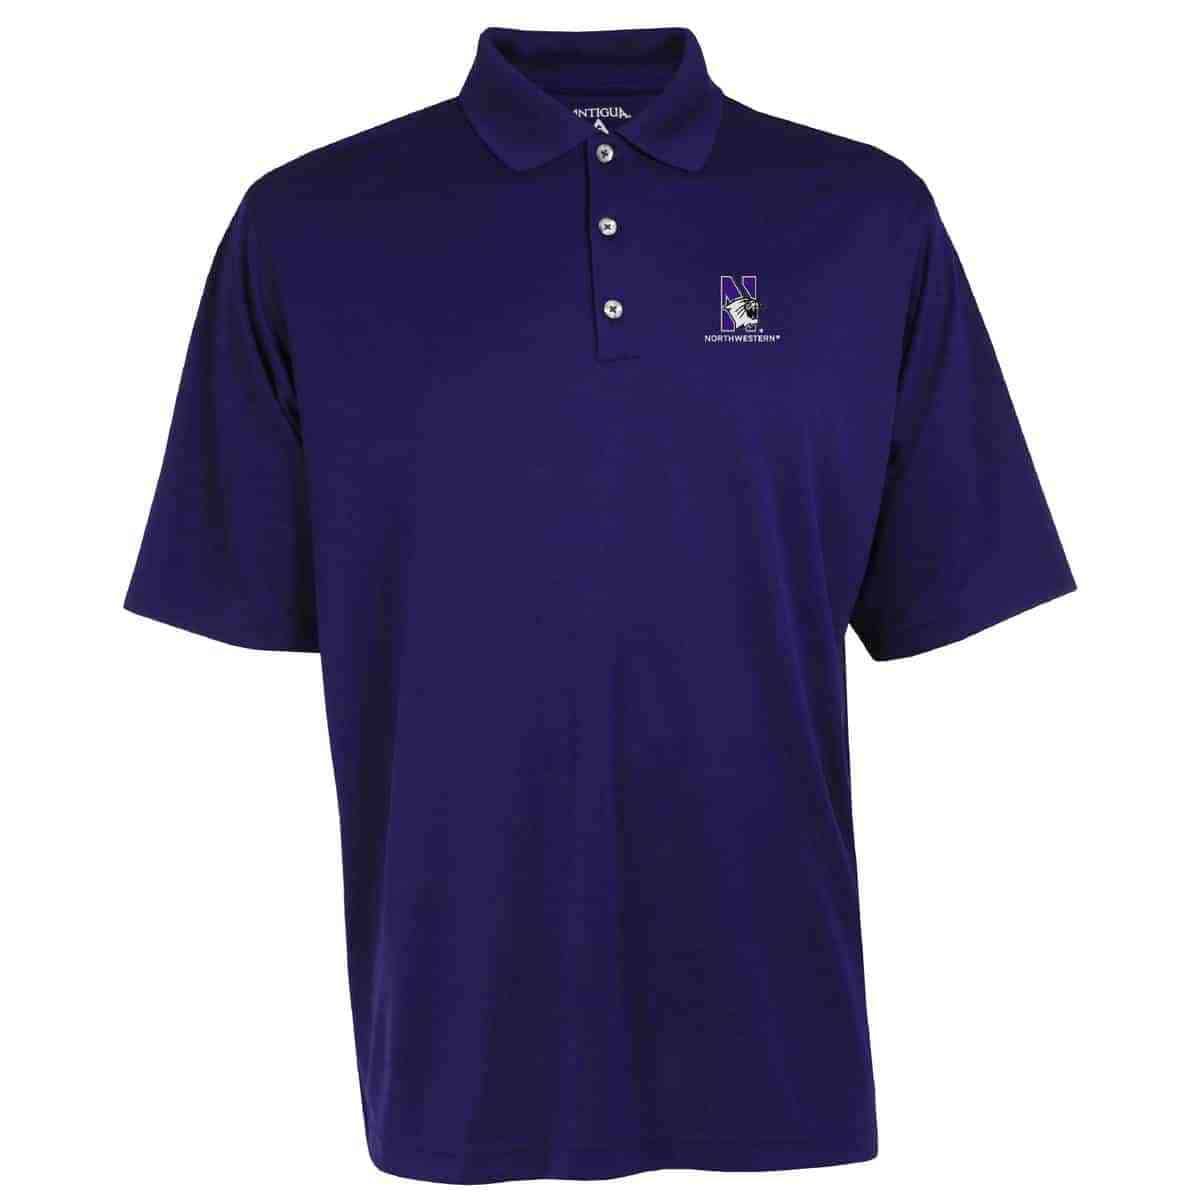 Northwestern Widcats Antigua Mens Purple Polo Shirt Exceed 100208